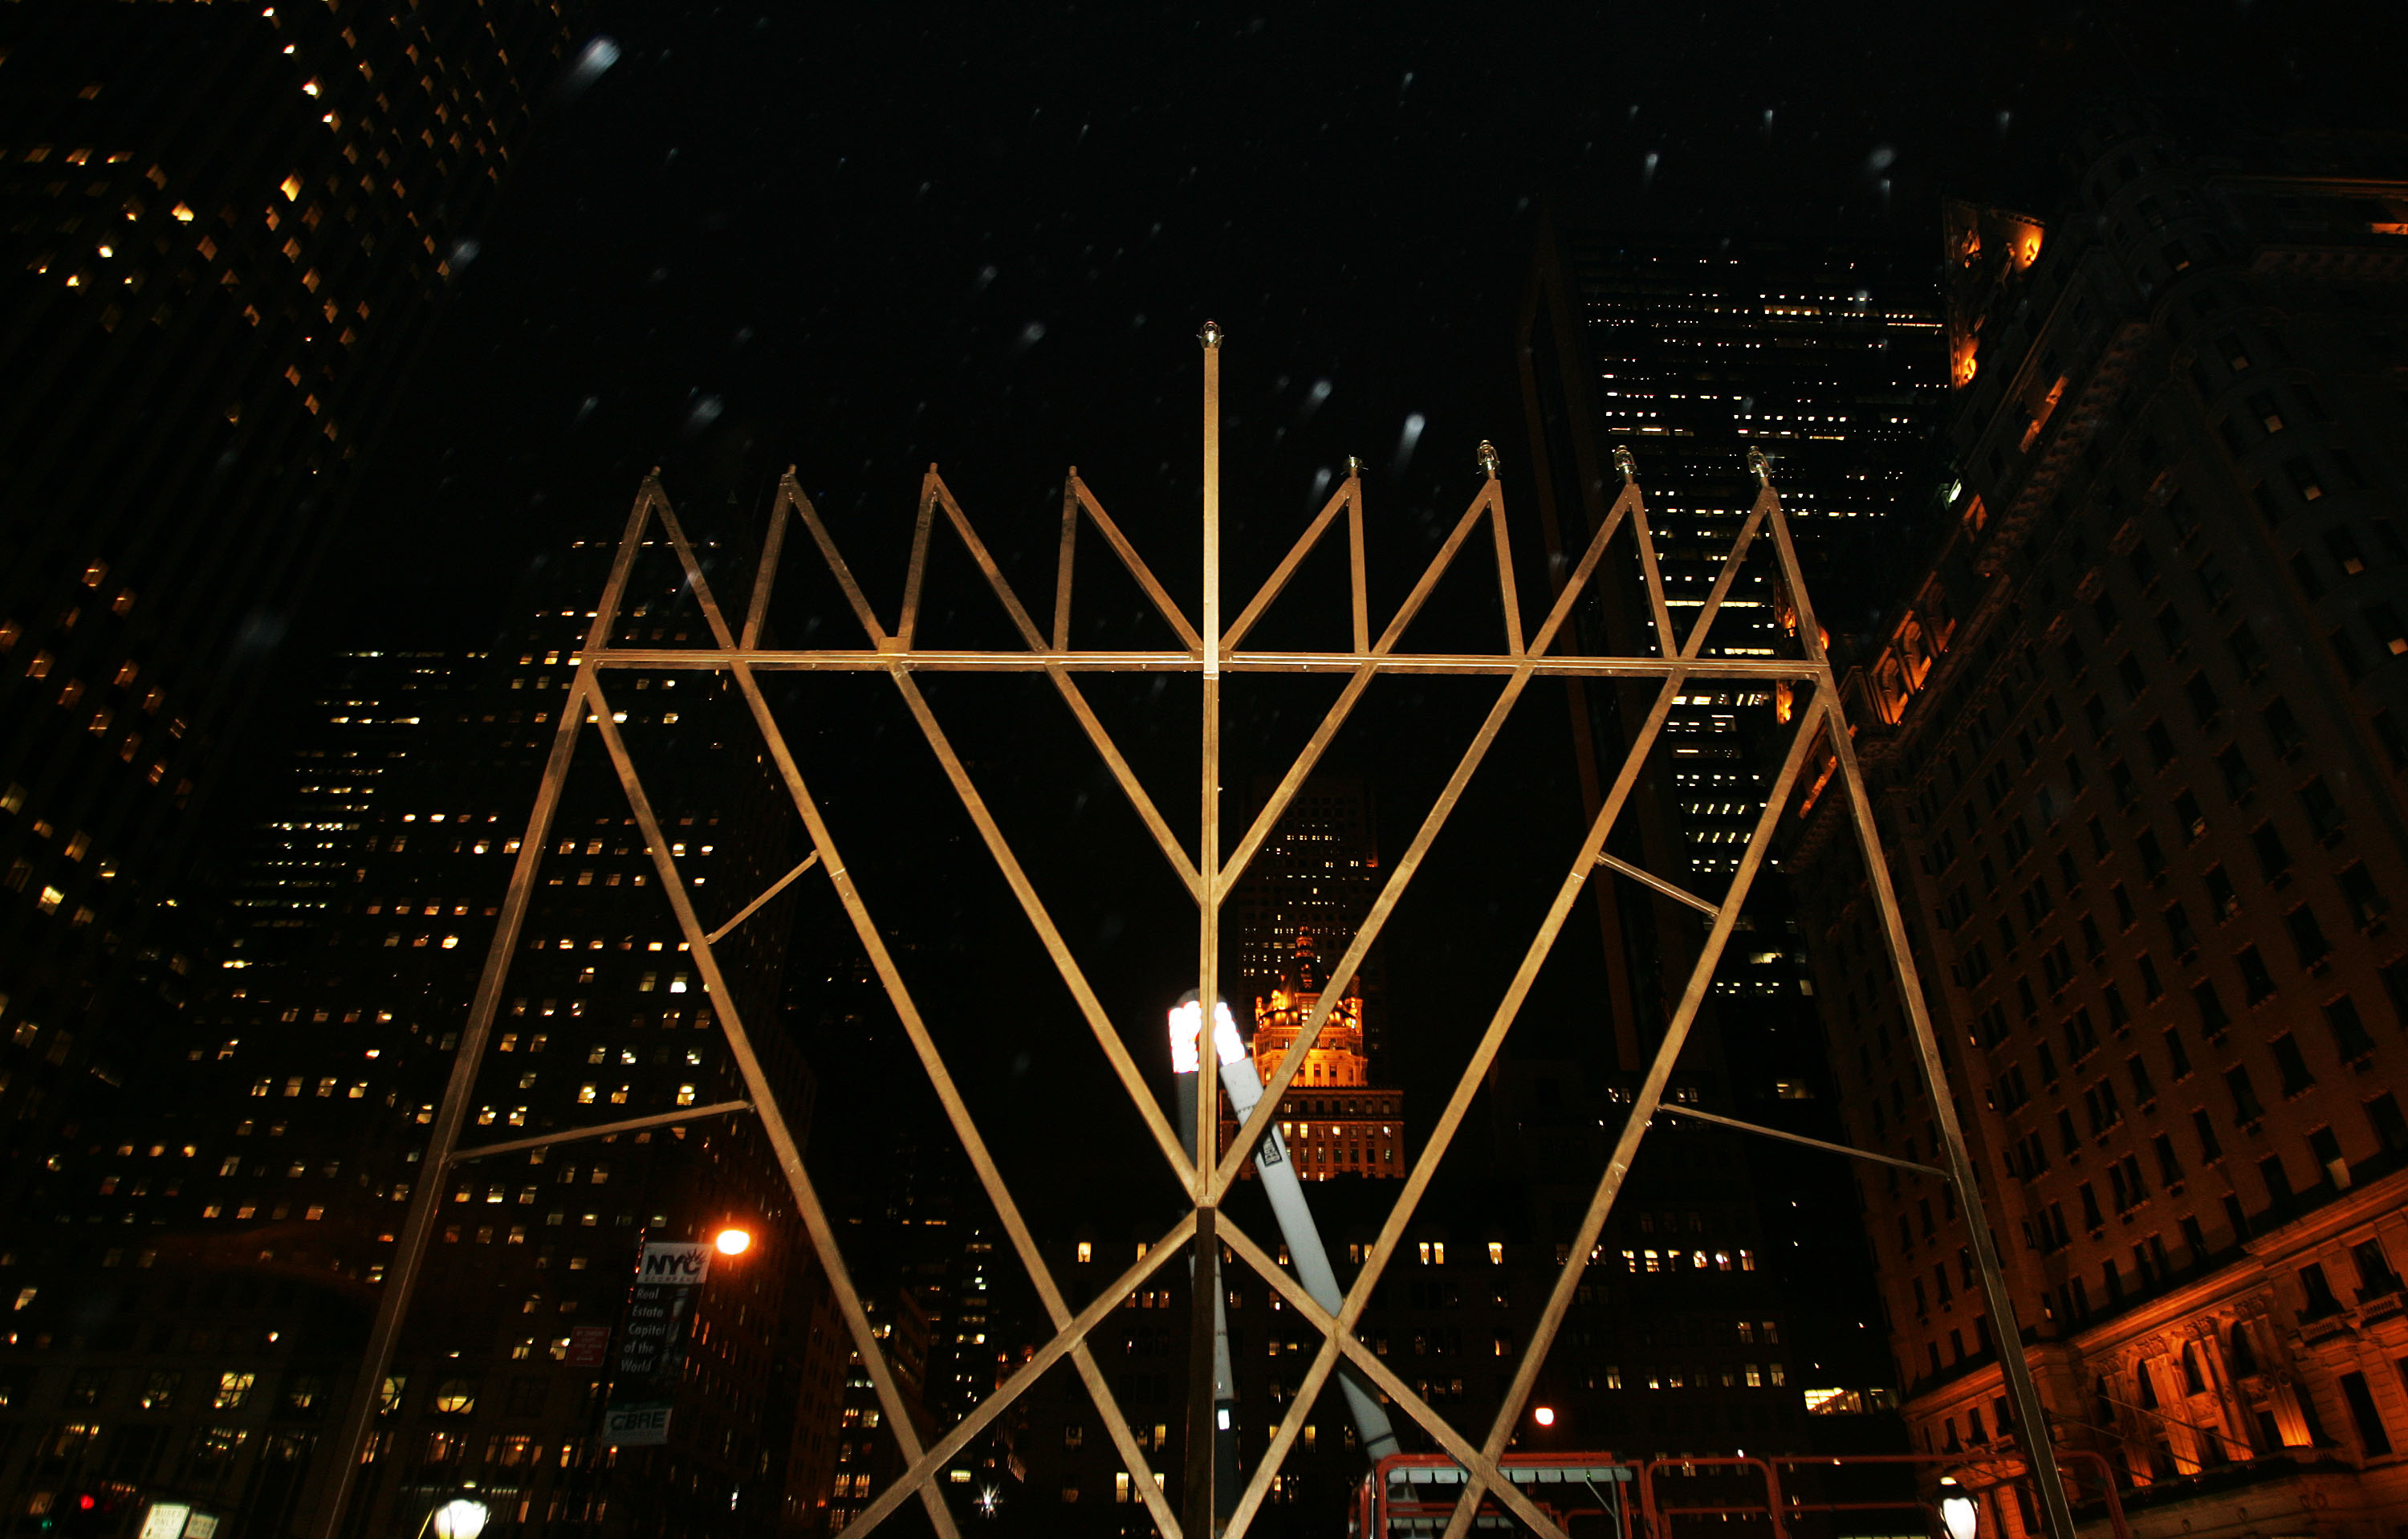 """A structure billed as the """"World's Largest Menorah"""" by Jewish leaders stands at the corner of Fifth Avenue and 59th Street December 9, 2004 in New York City."""